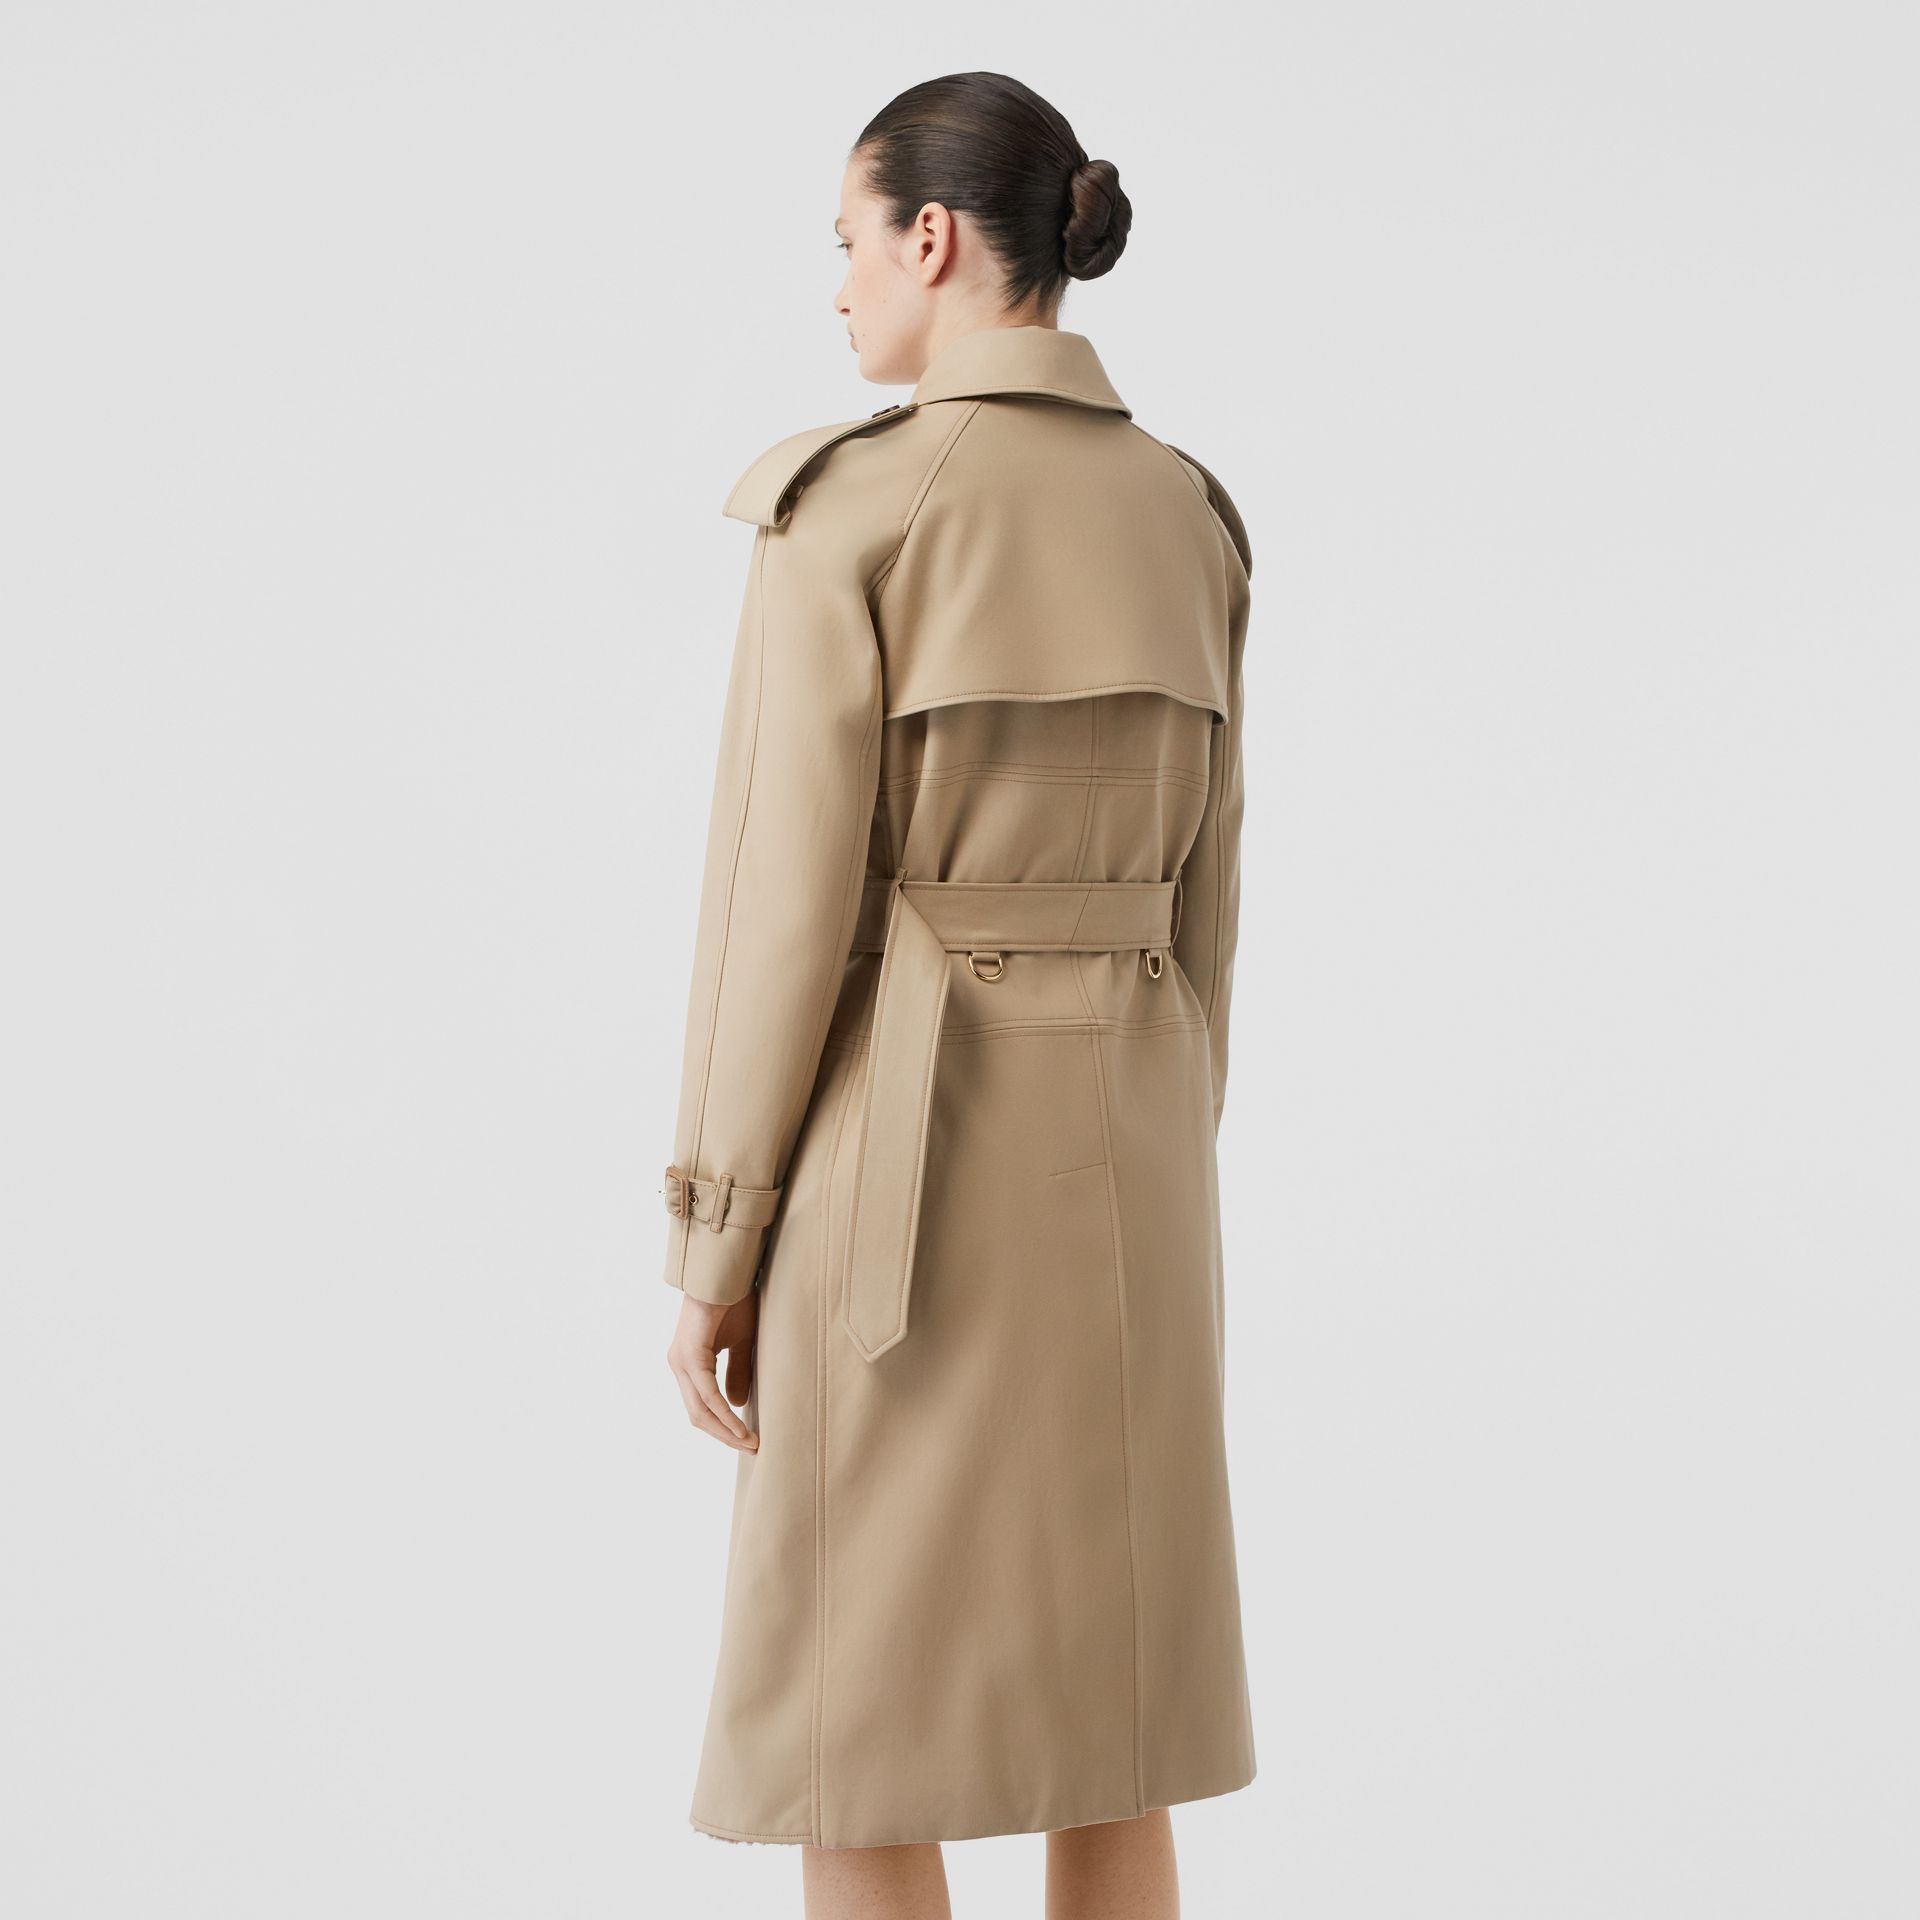 Deconstructed Cotton and Shearling Trench Coat in Honey - Women | Burberry - gallery image 2